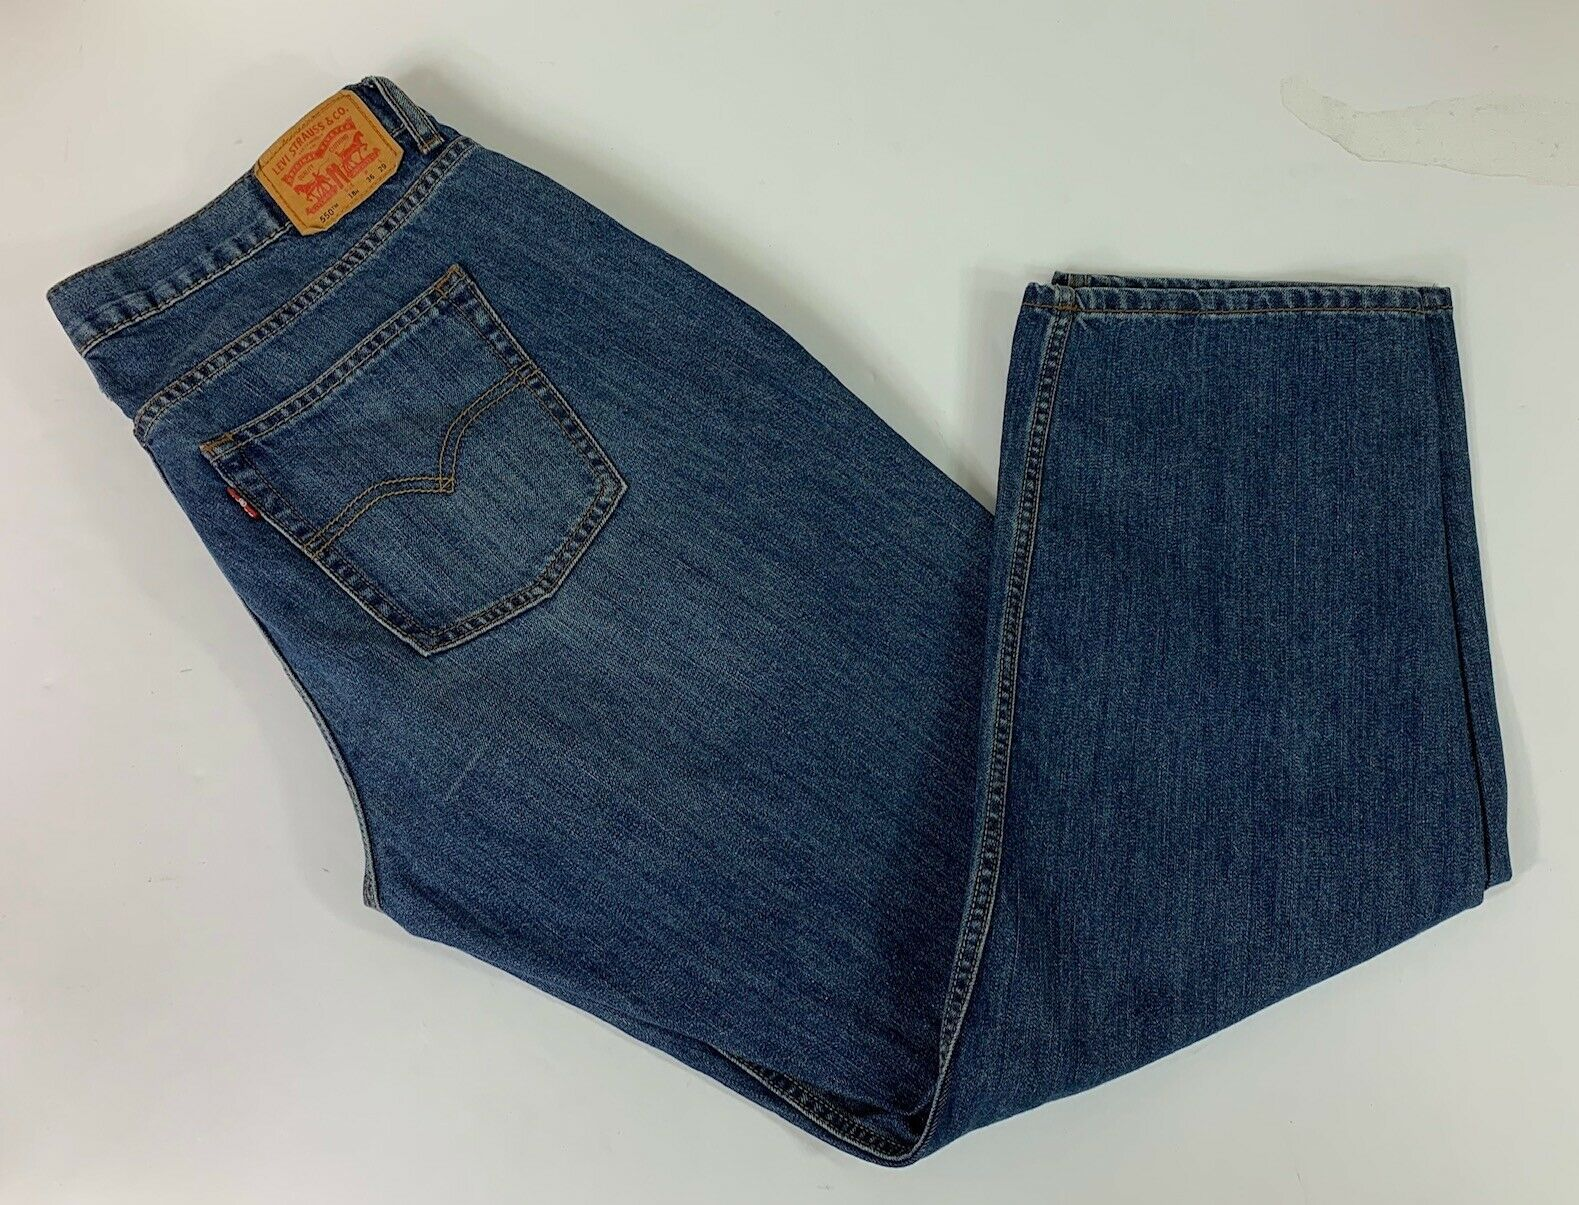 LEVI  550 BOY'S RELAXED FIT JEANS 18 Husky 36 x 29  image 4